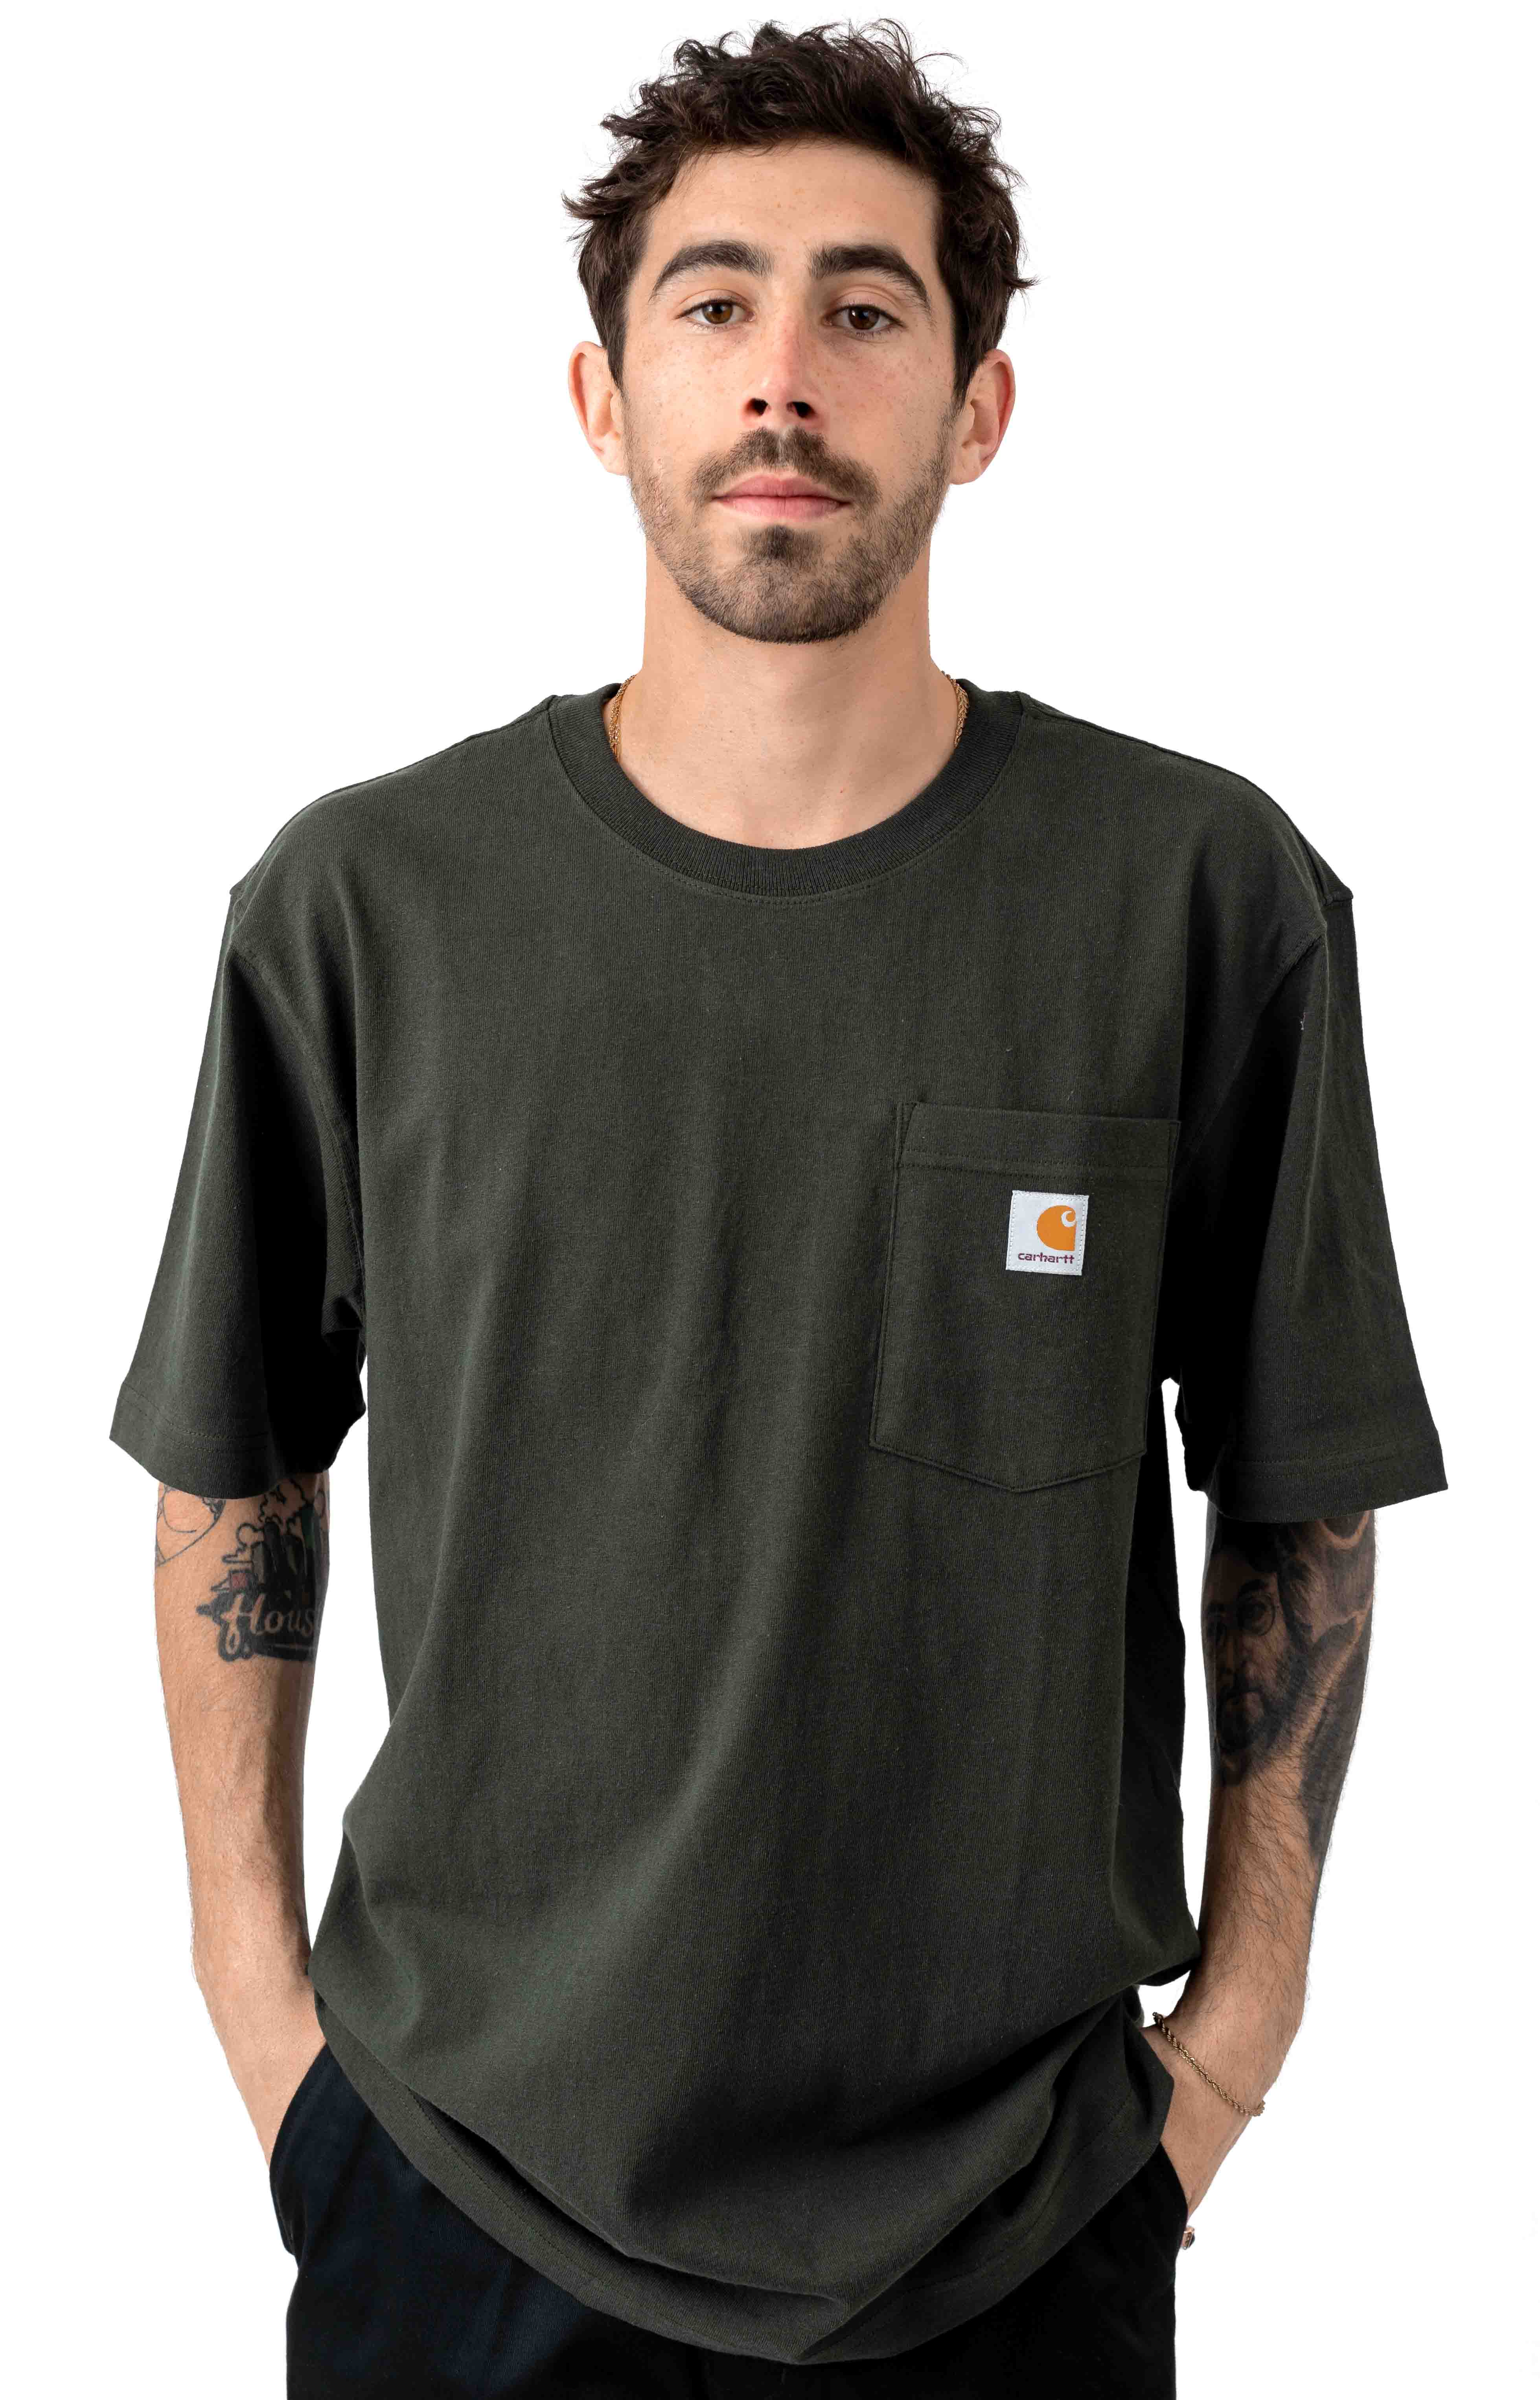 Carhartt, (K87) Workwear Pocket T-Shirt - Peat